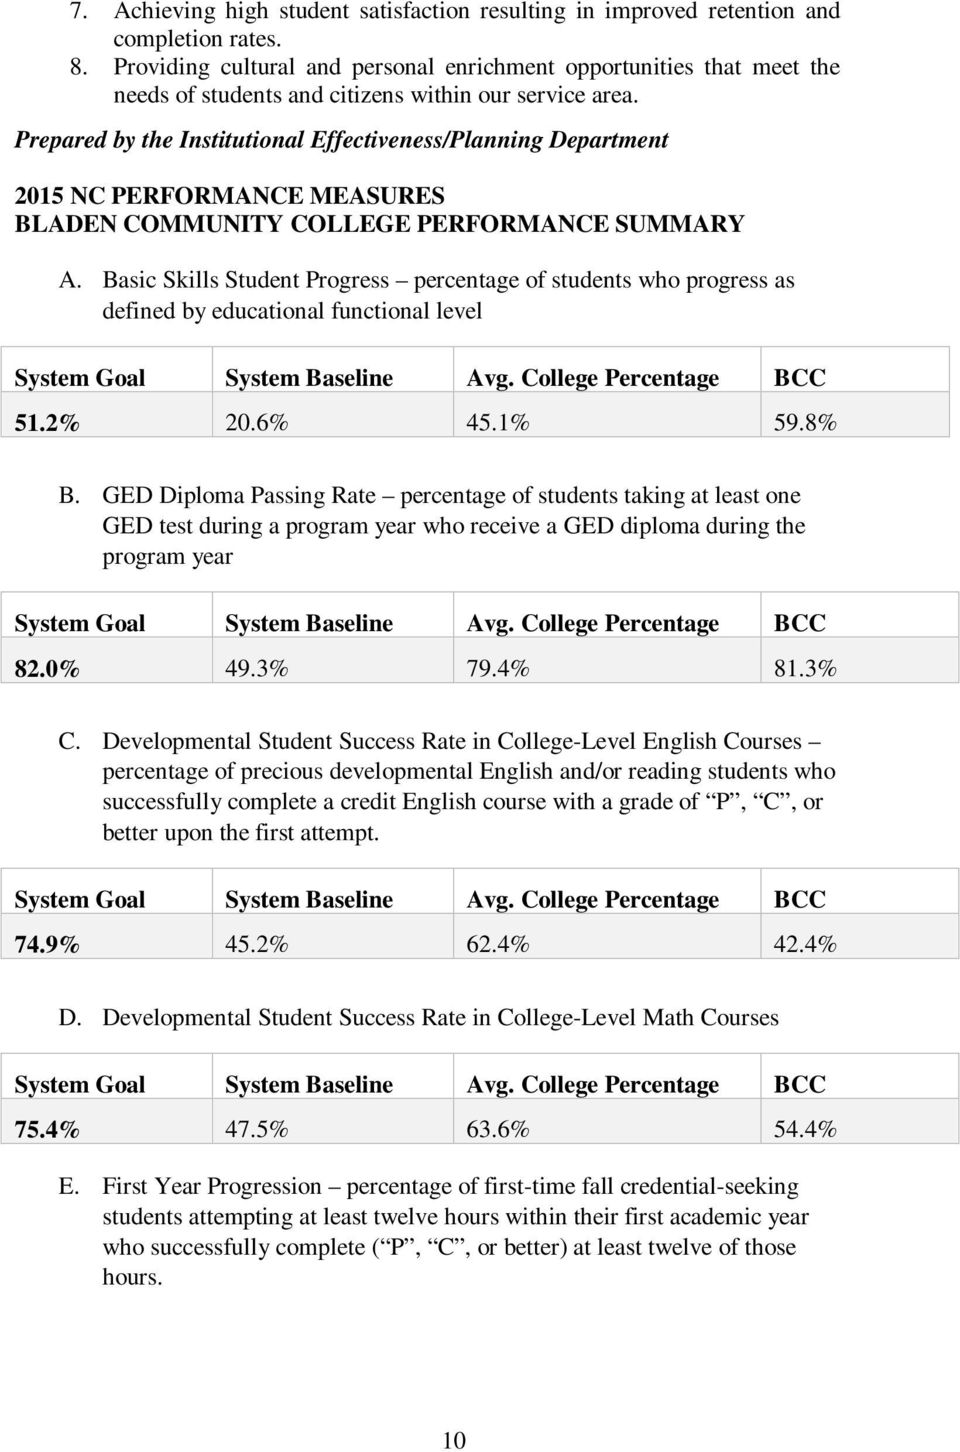 Prepared by the Institutional Effectiveness/Planning Department 2015 NC PERFORMANCE MEASURES BLADEN COMMUNITY COLLEGE PERFORMANCE SUMMARY A.